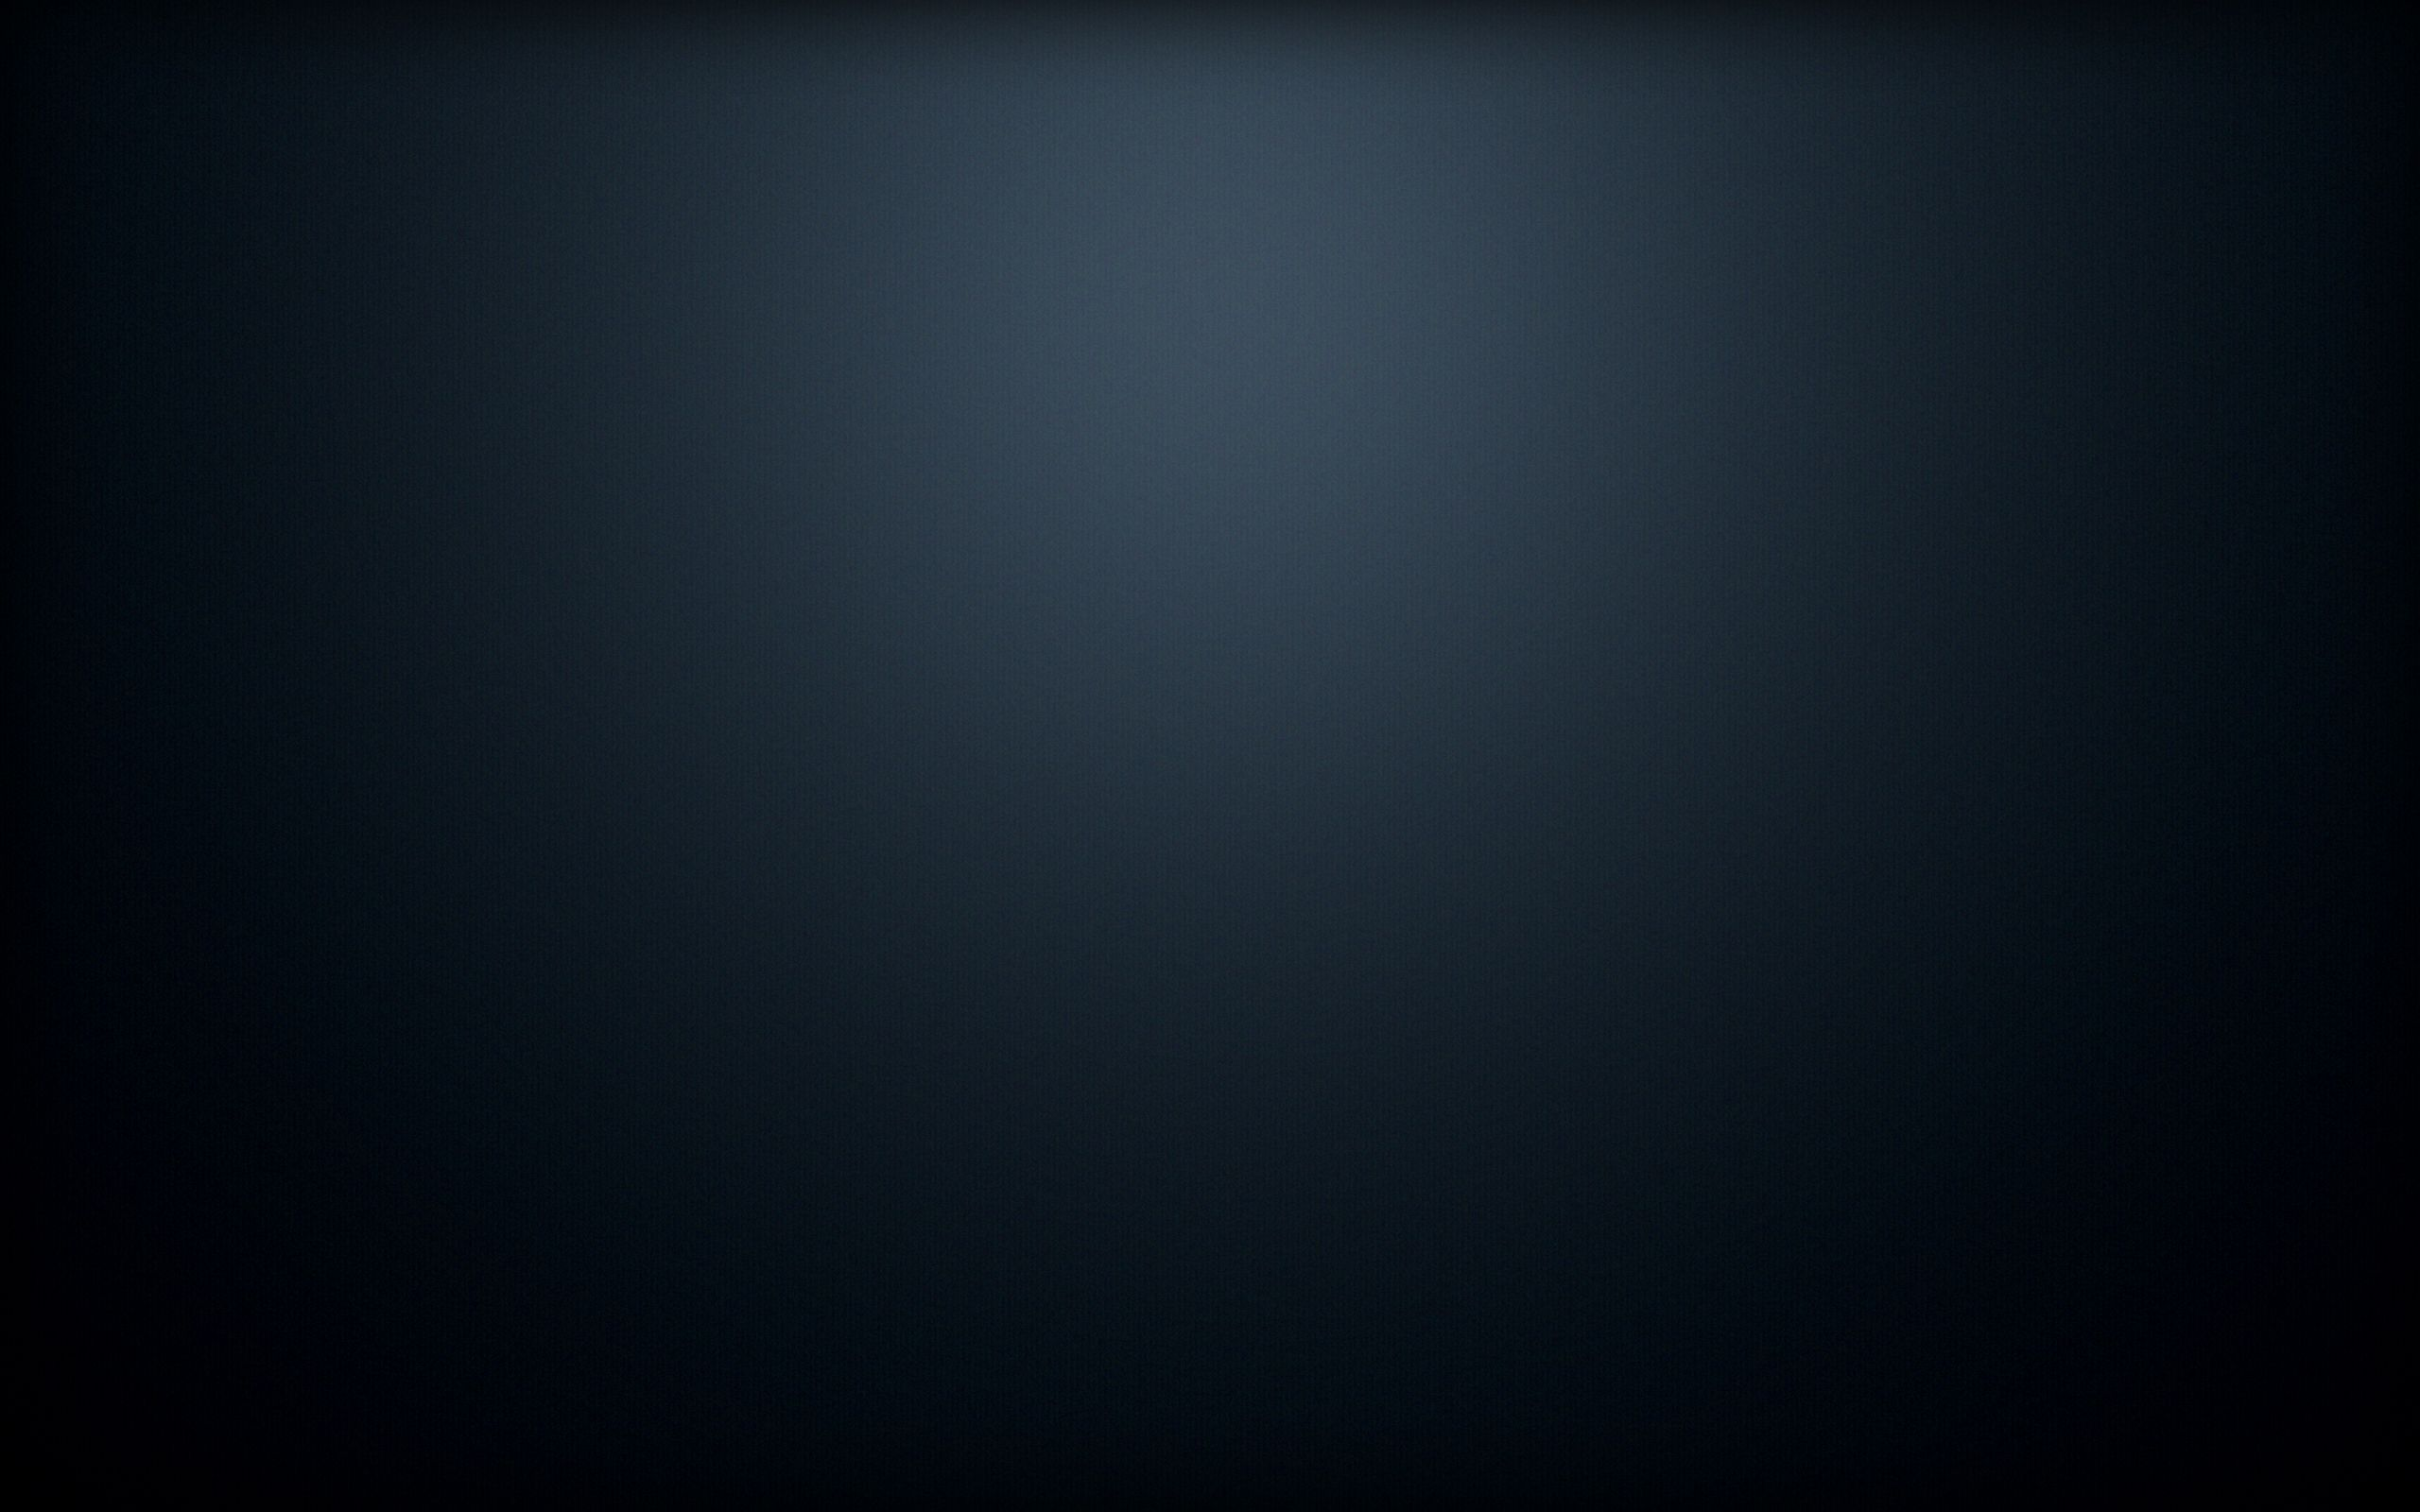 Dark Blue Texture wallpaper 2560x1600